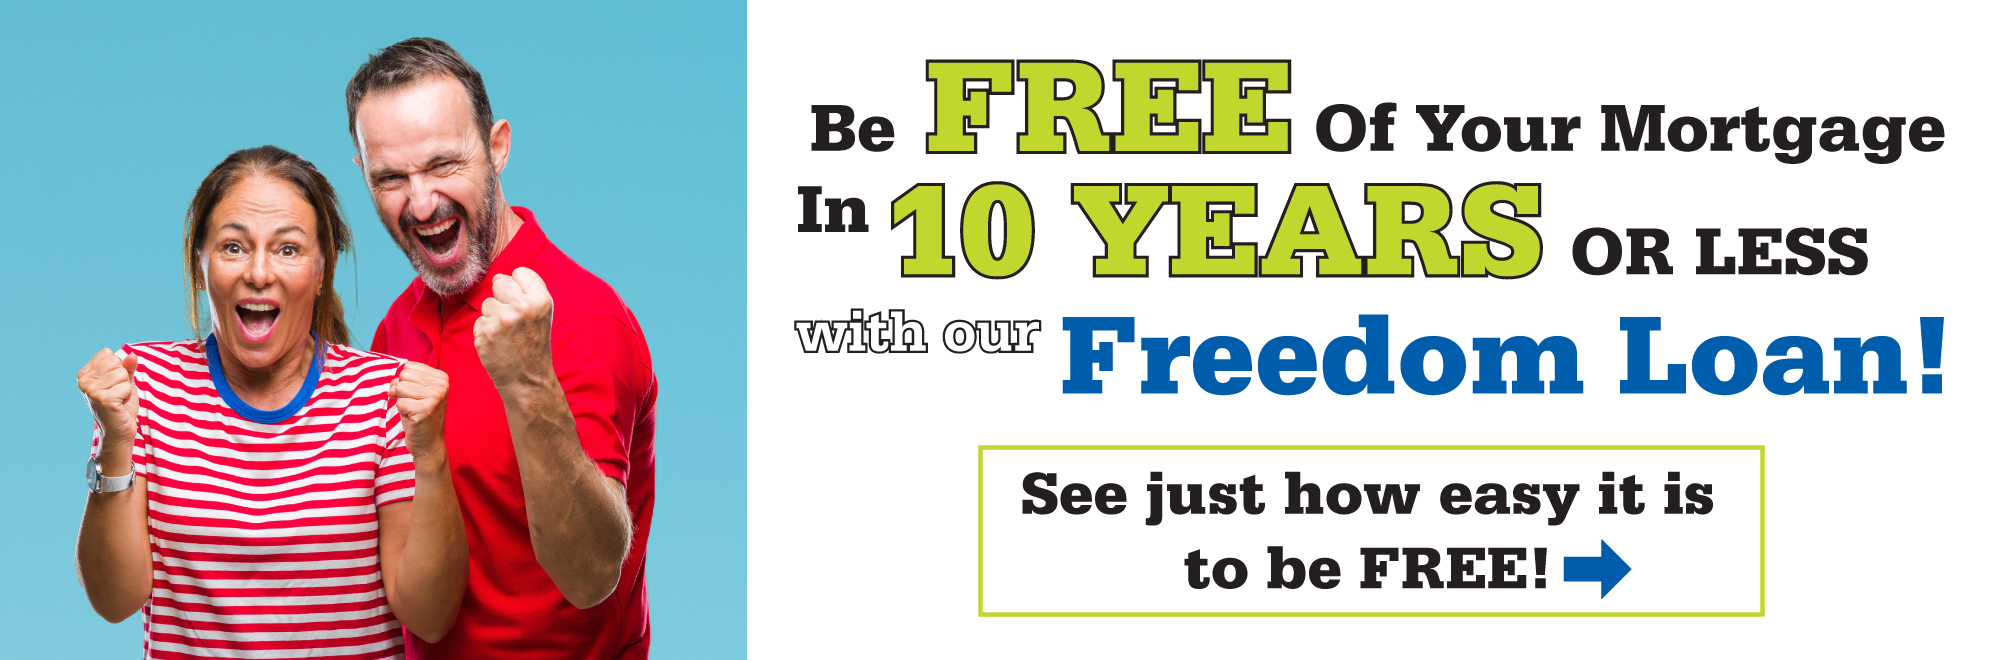 Be set free from your mortgage loan with our freedom loan!